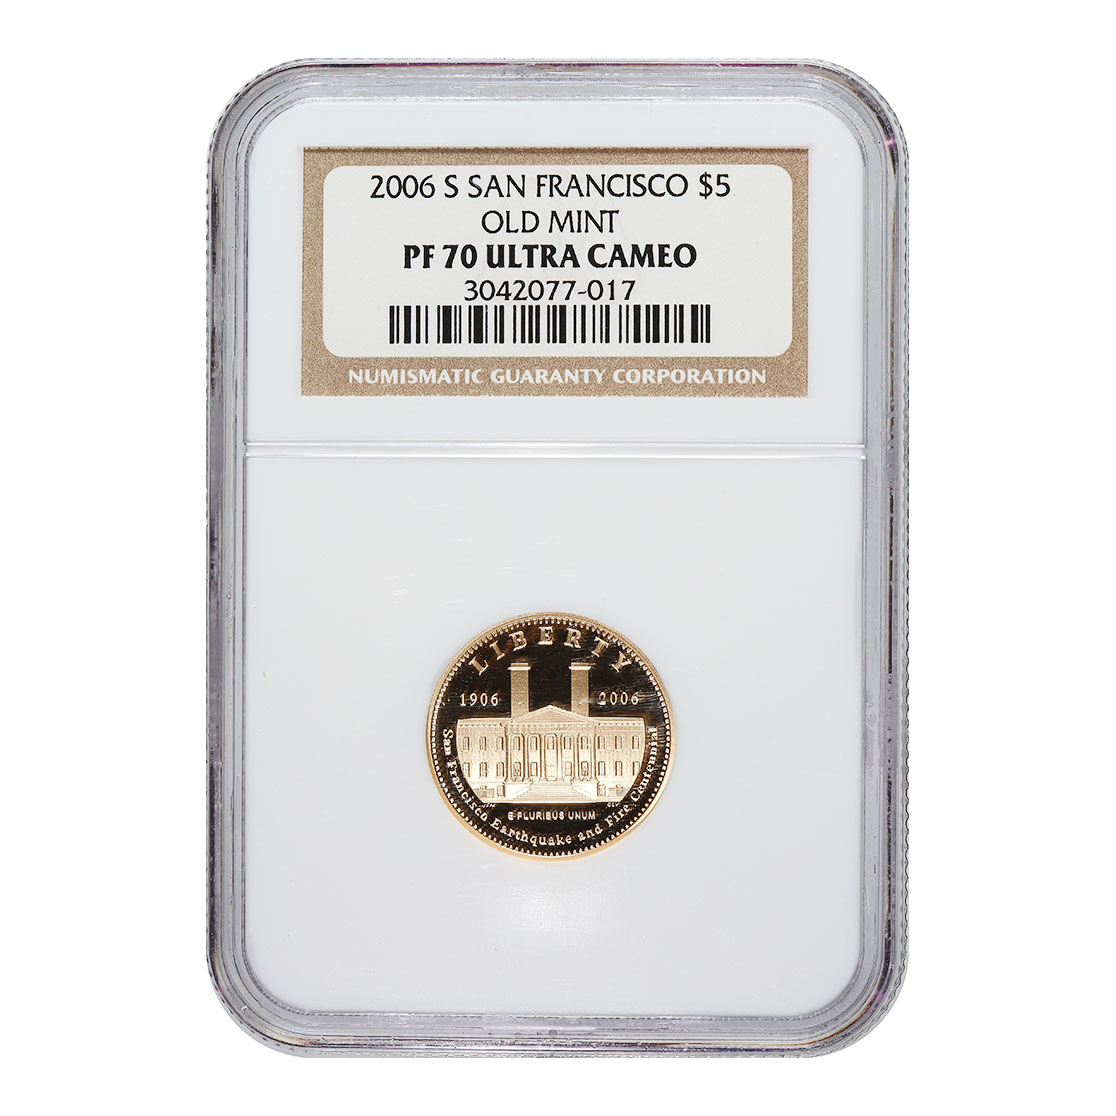 Certified Commemorative $5 Gold 2006-S Old Mint PF70 NGC